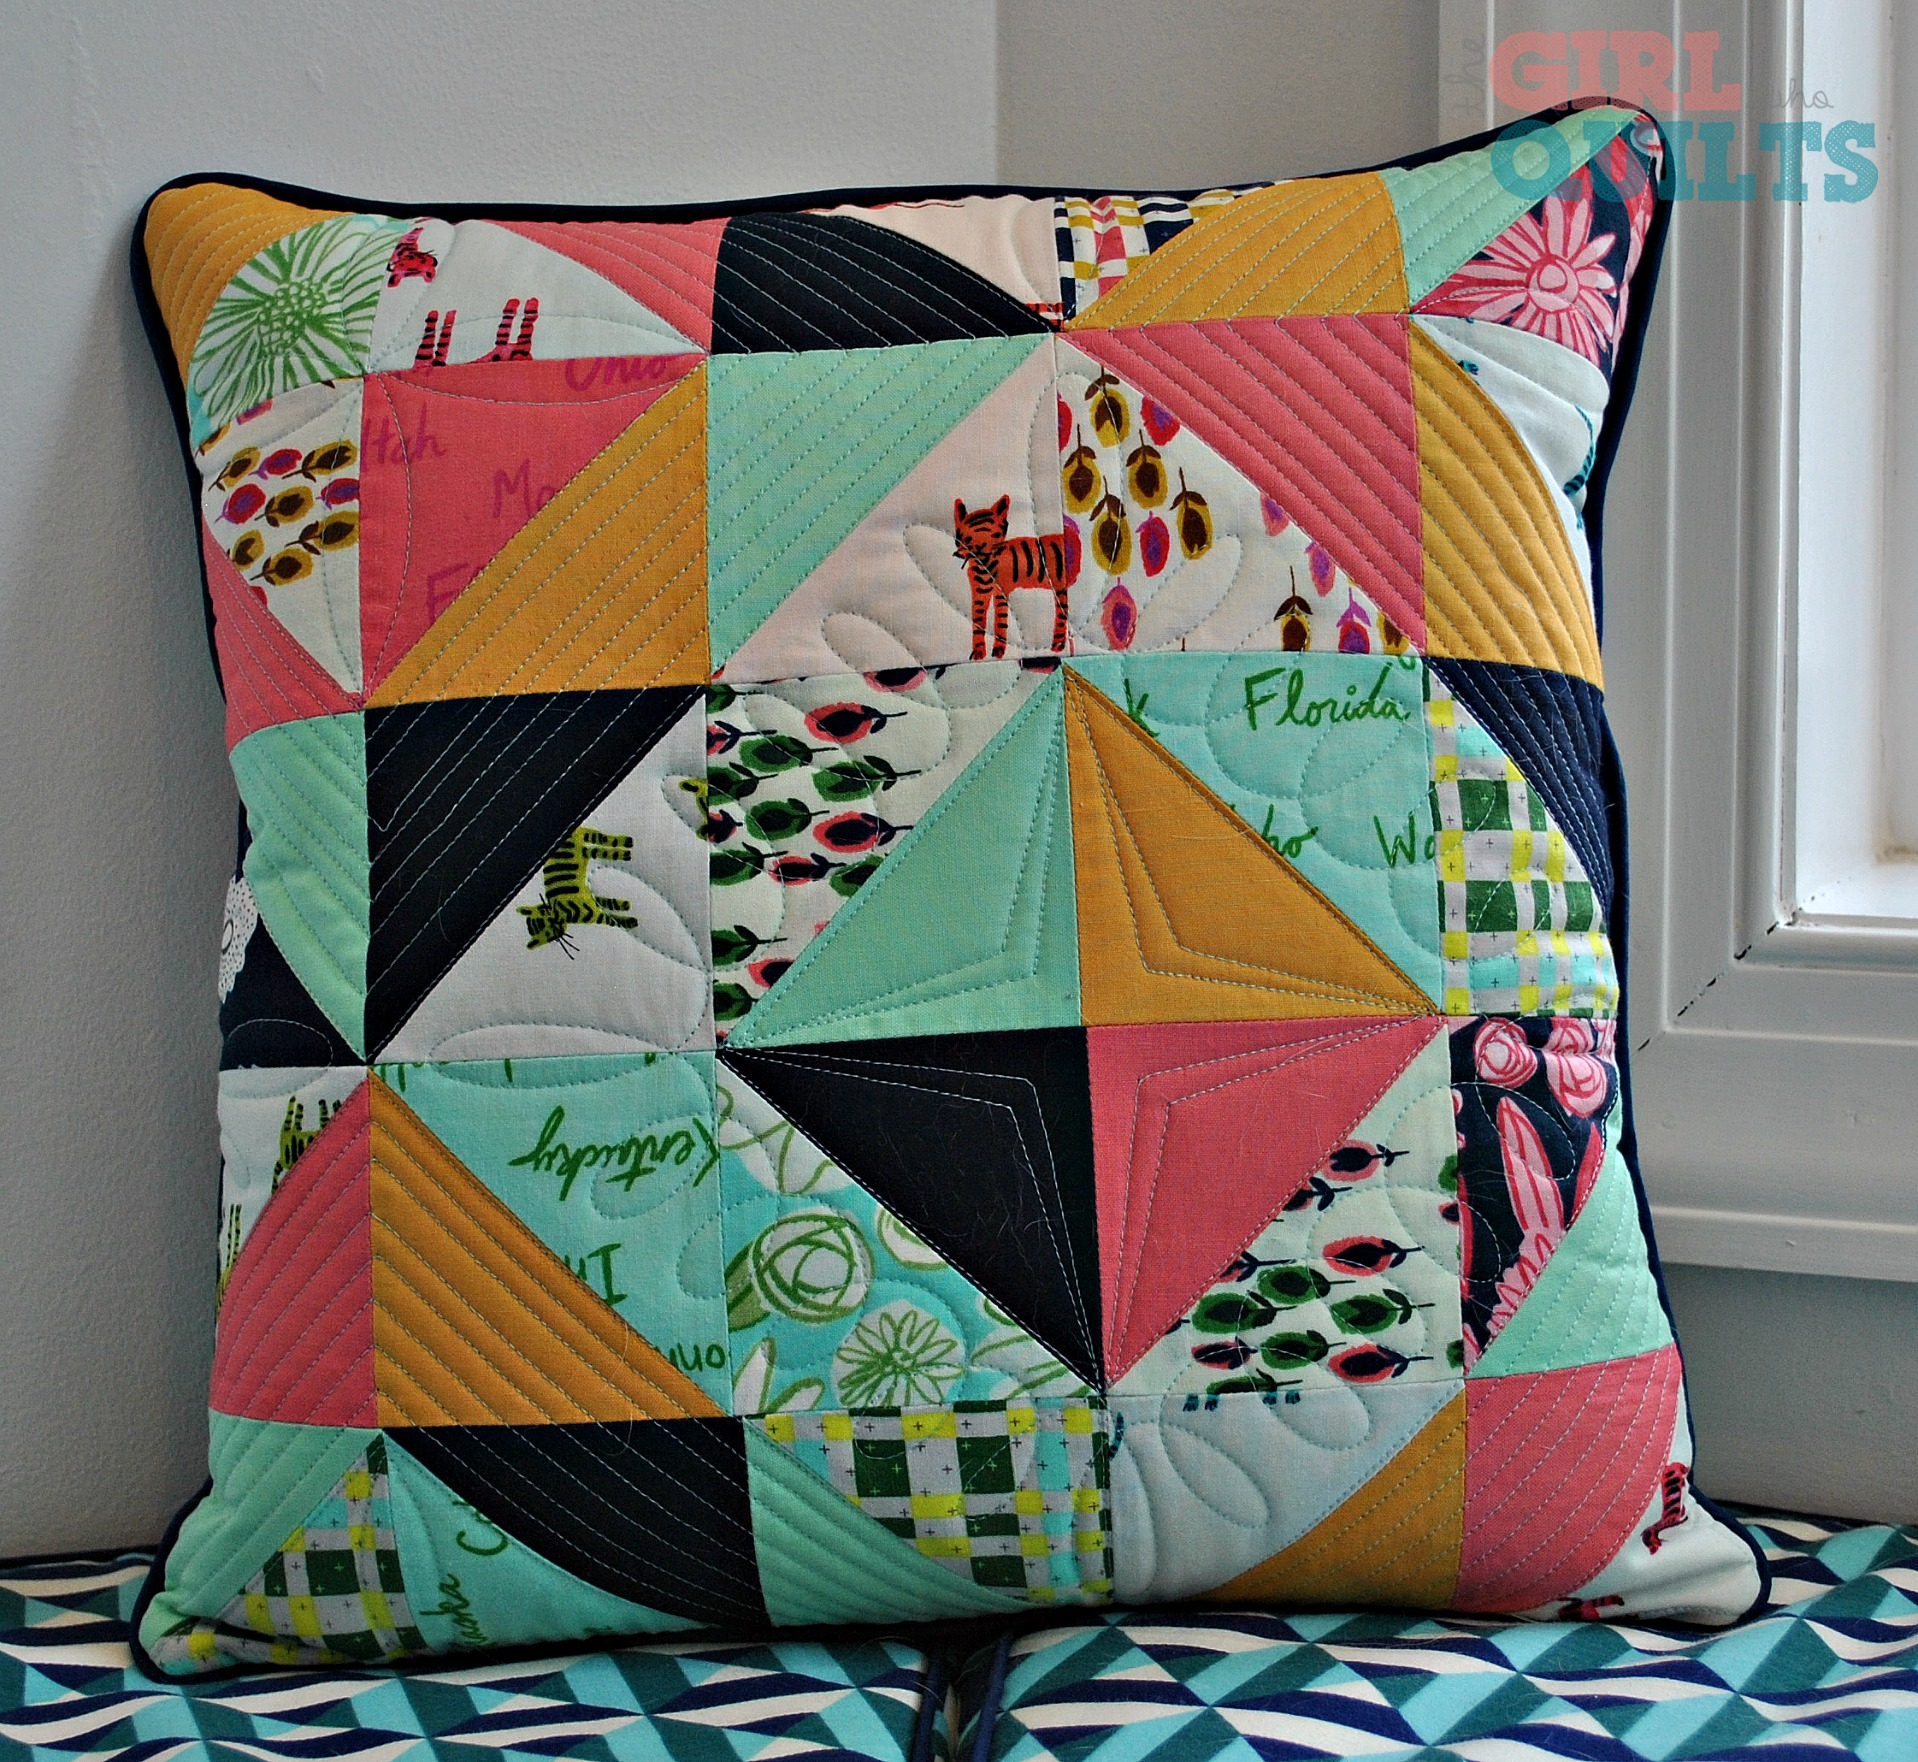 Roundabout Quilt and pillows